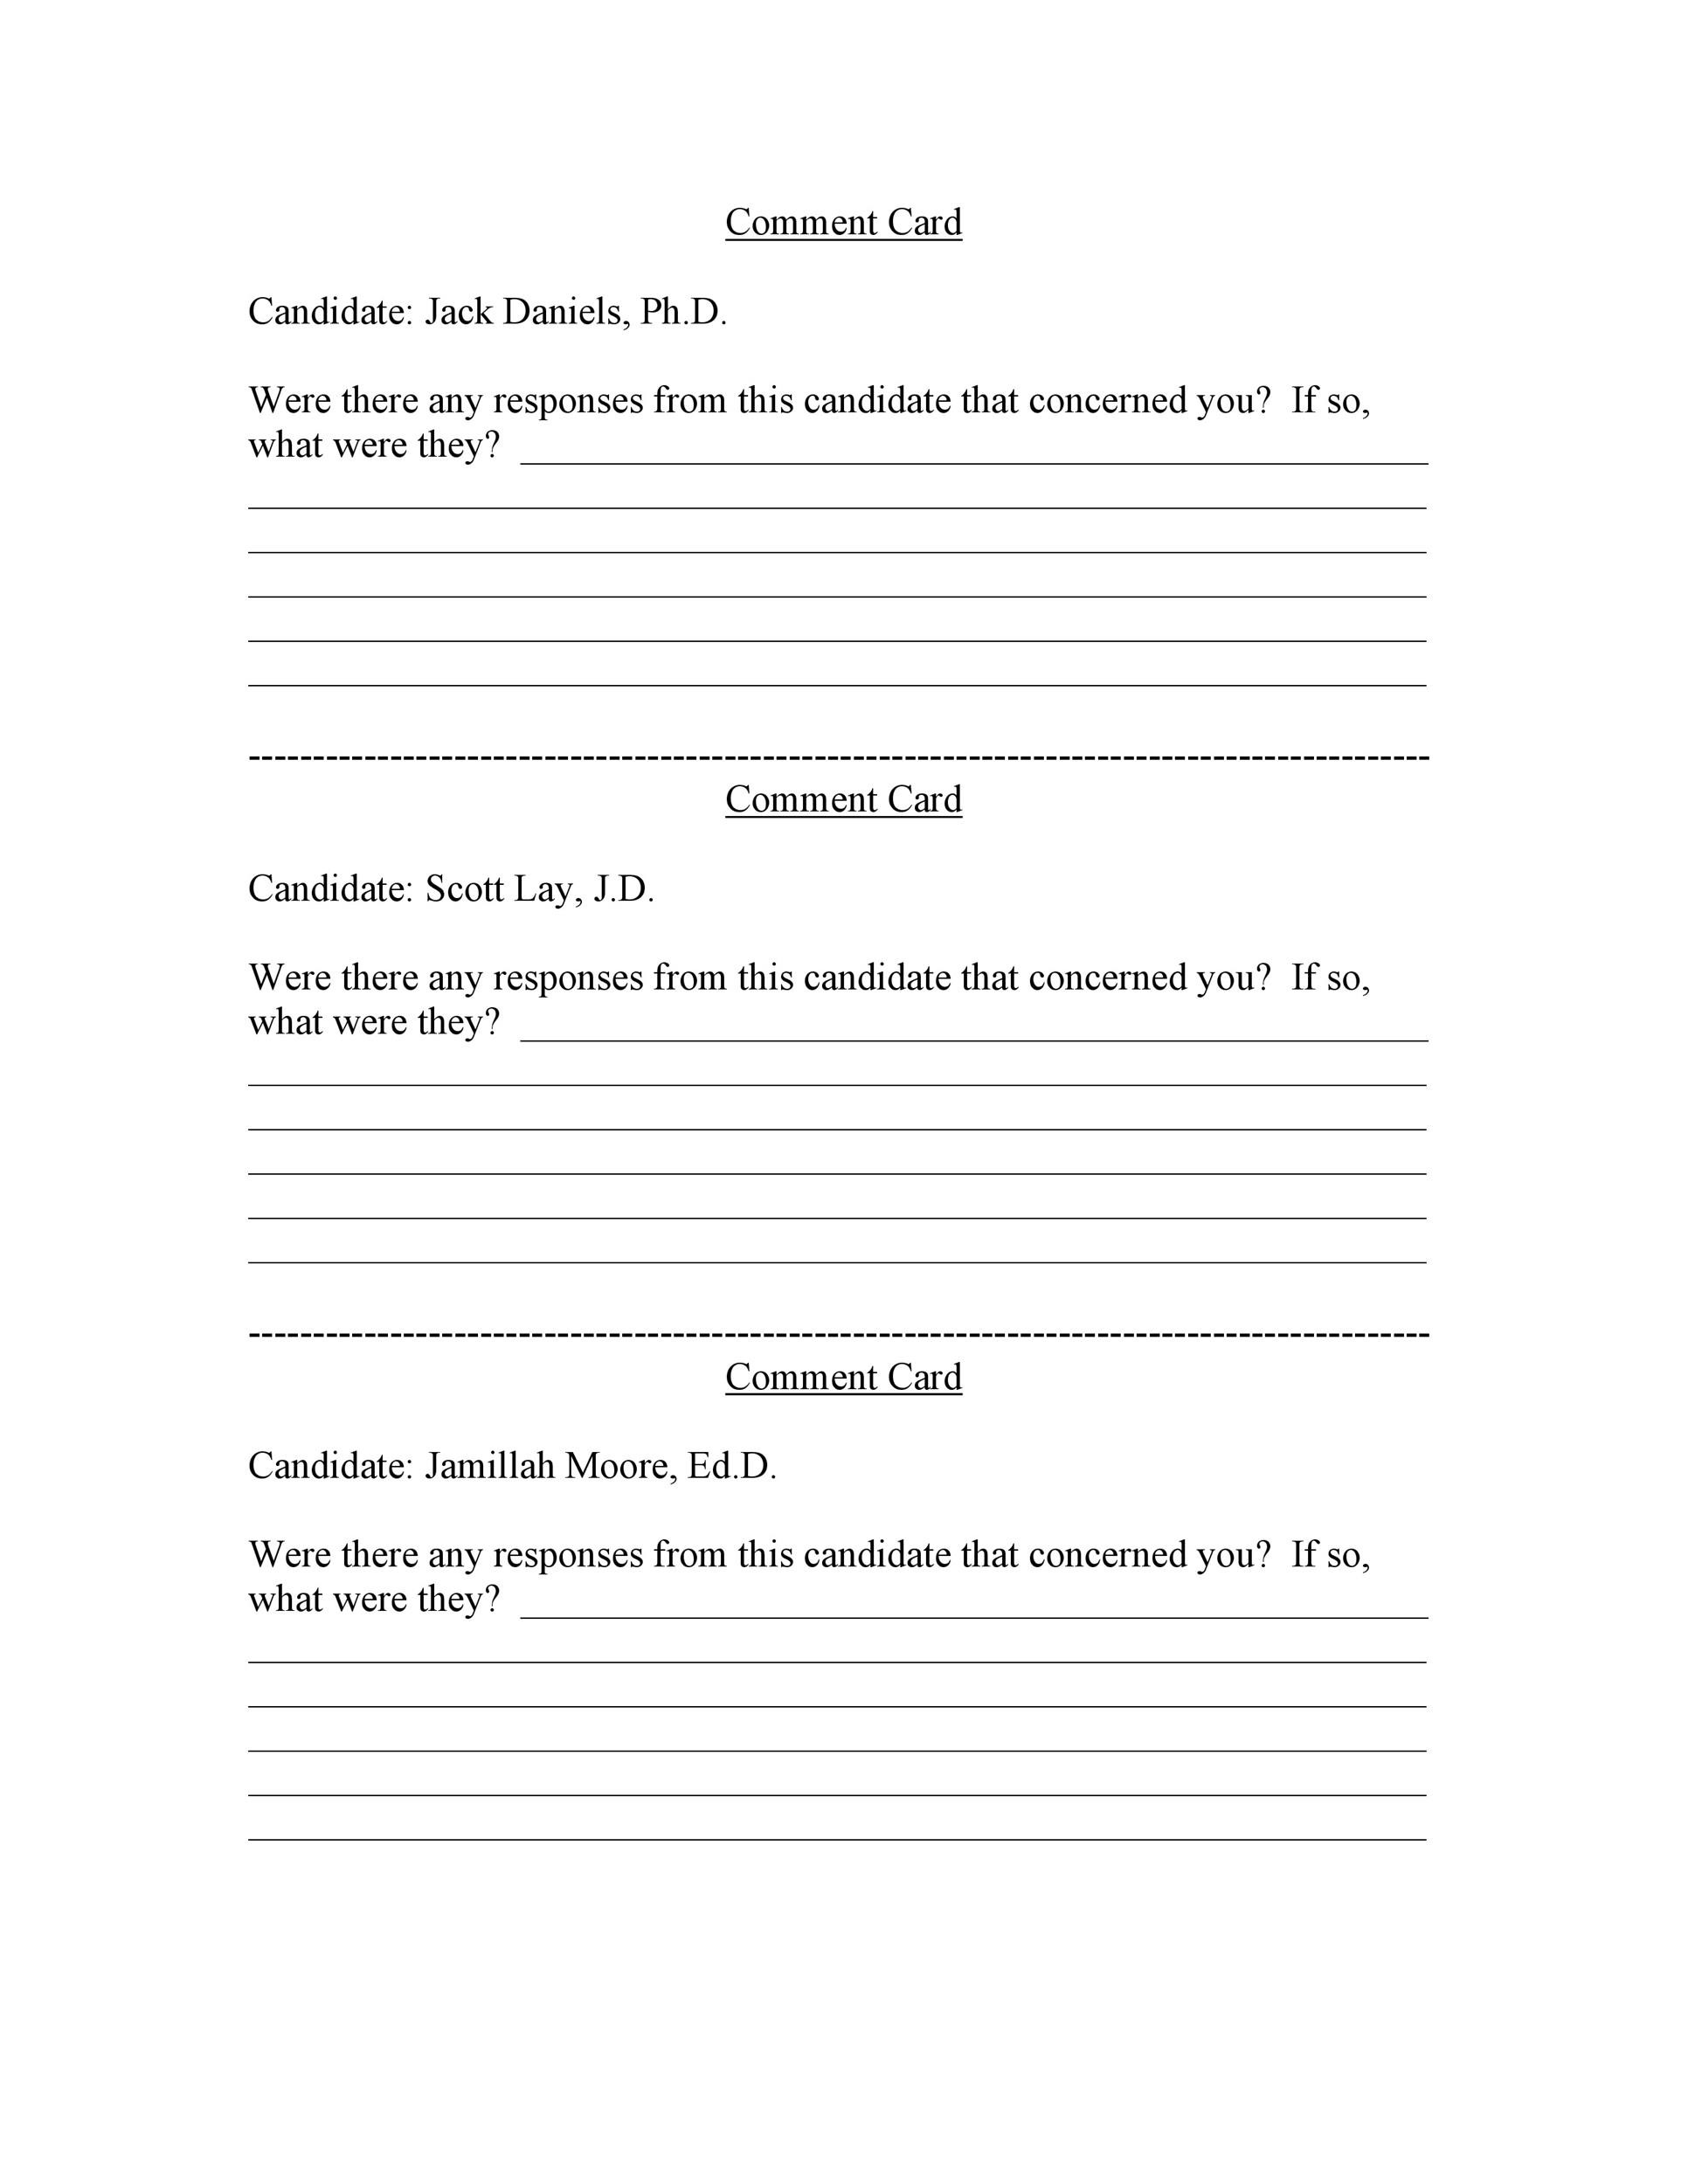 Free comment card template 32